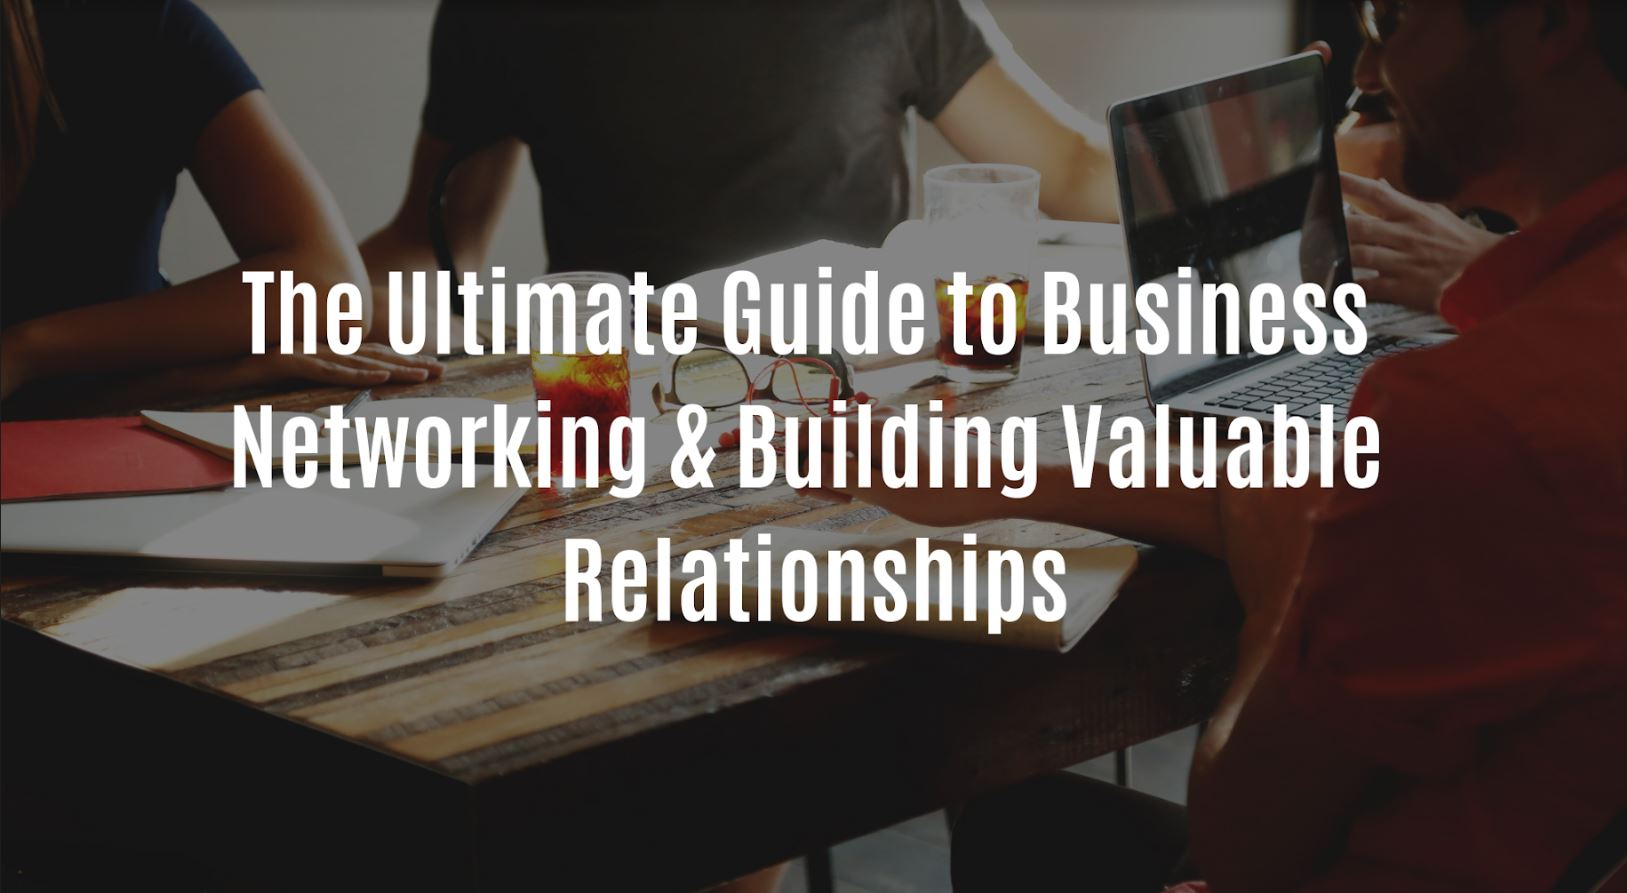 The Ultimate Guide to Business Networking And Building Valuable Relationships.JPG